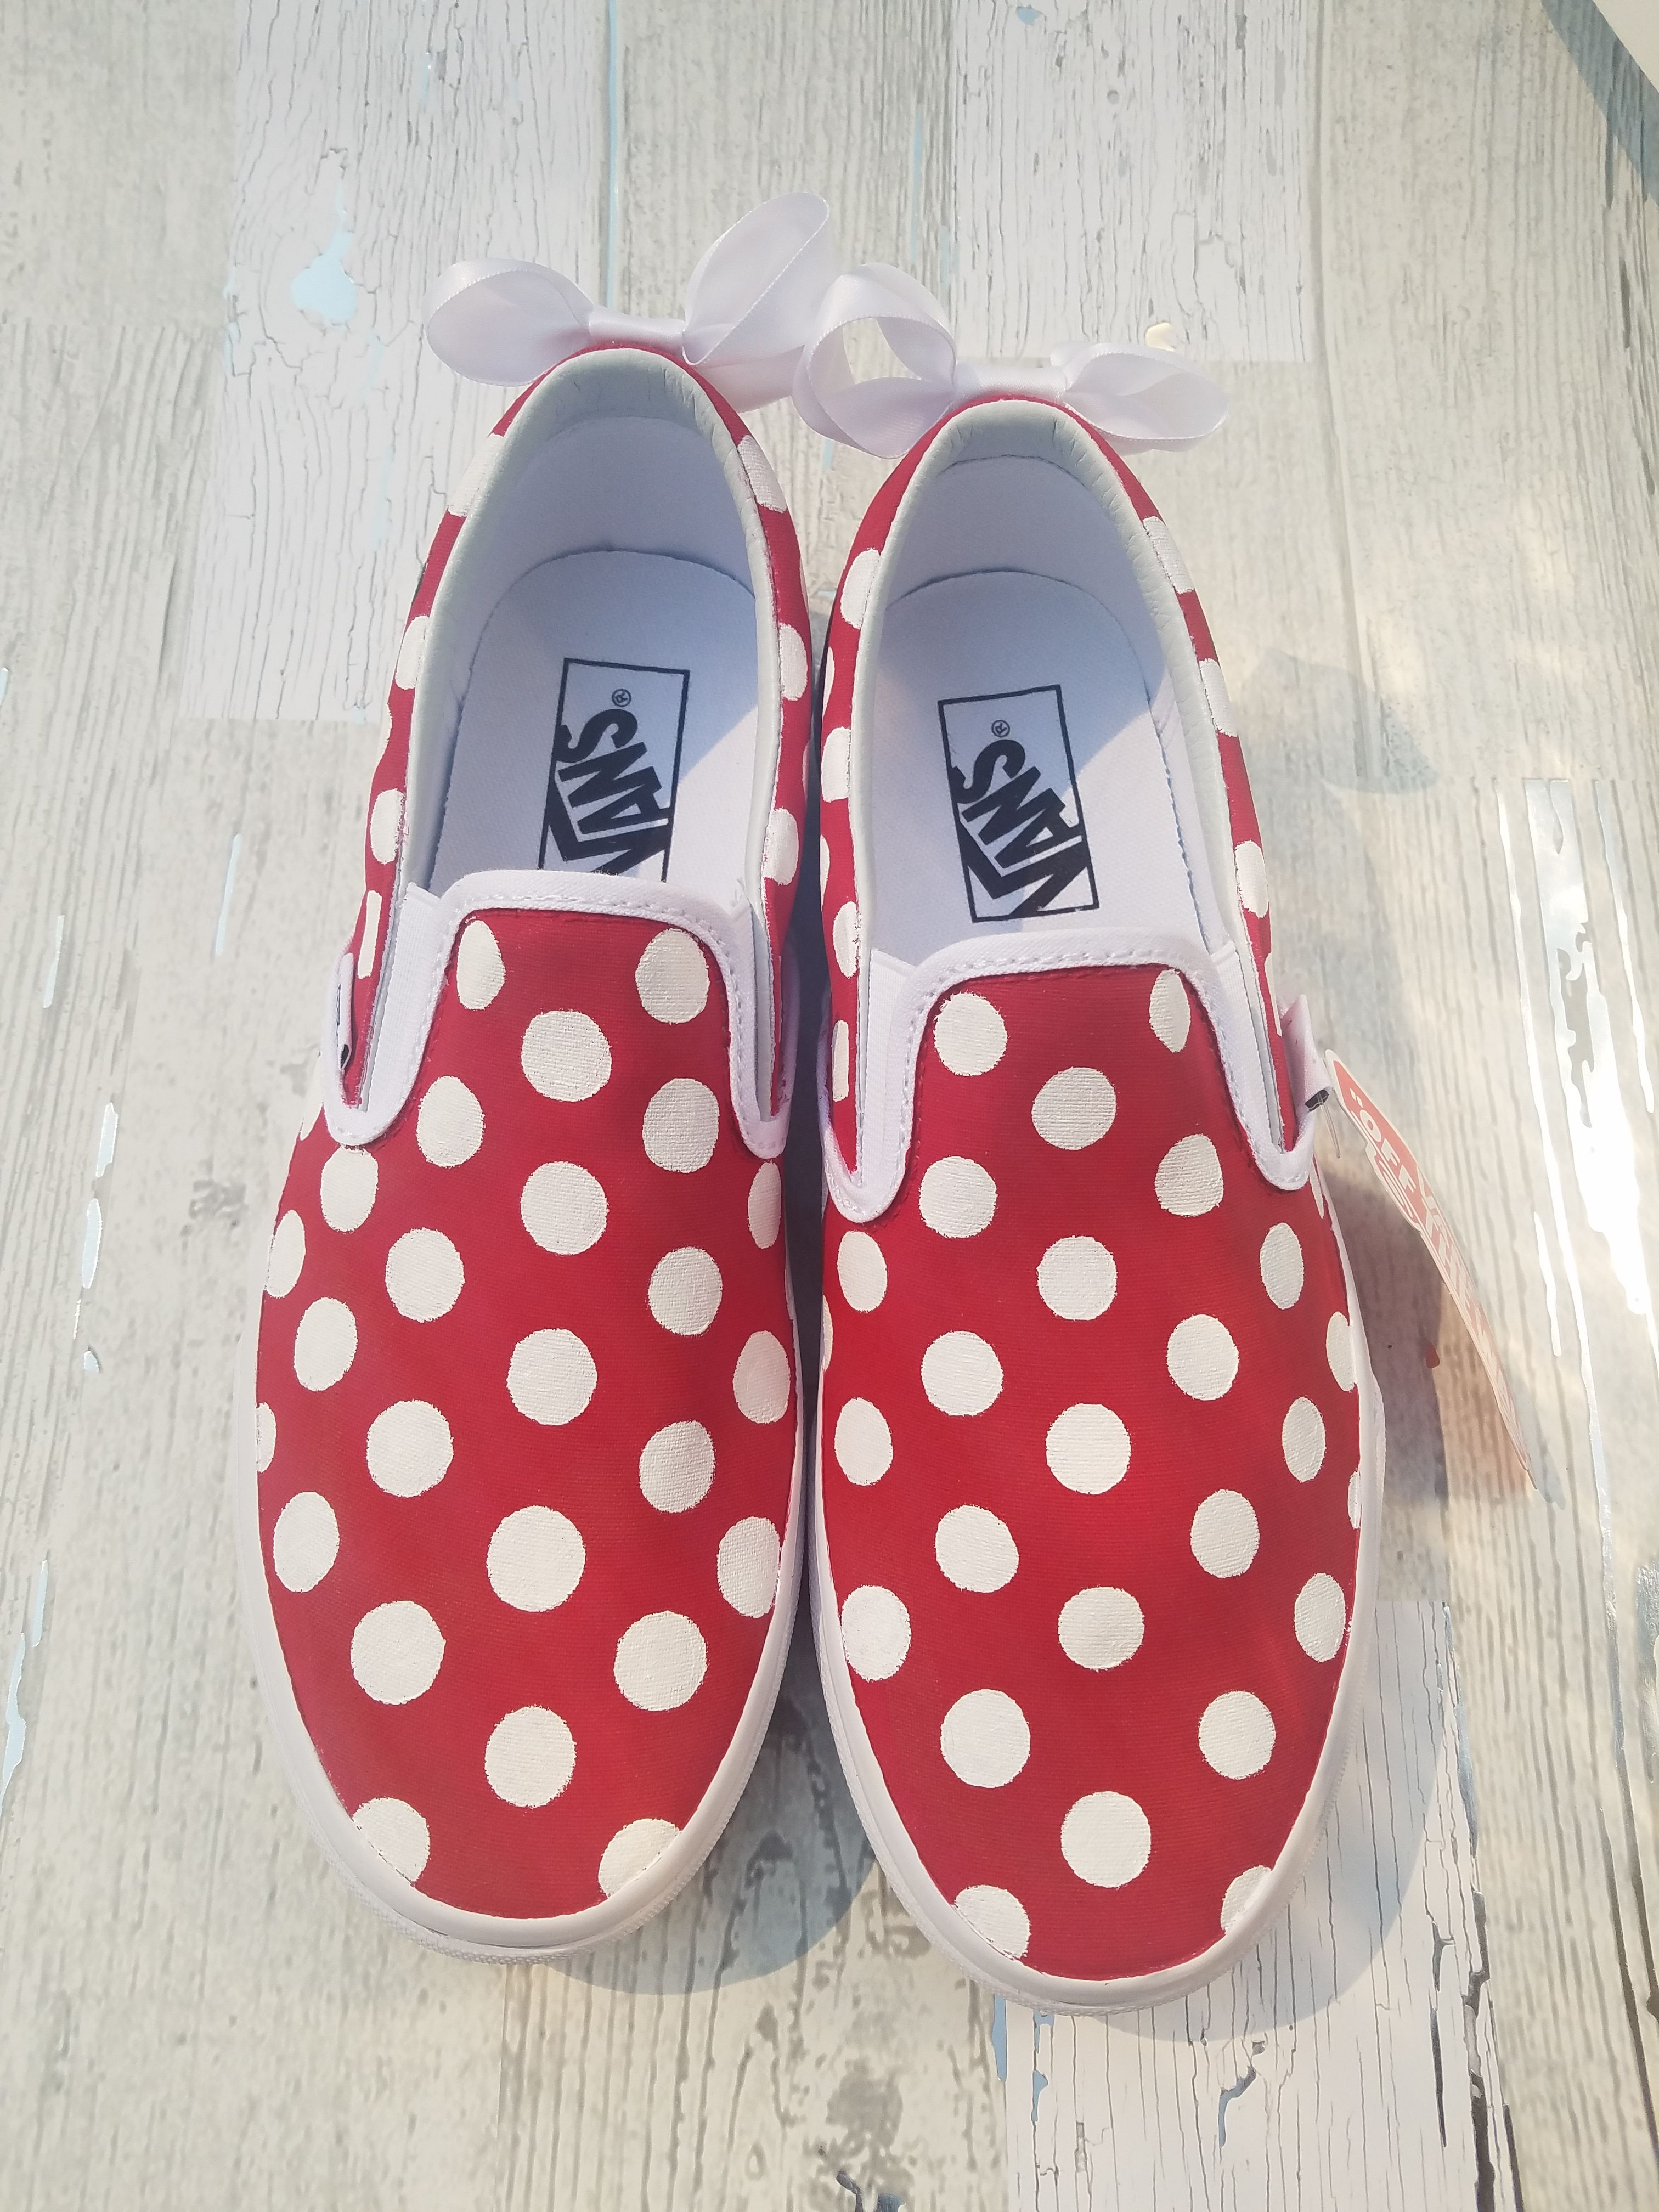 f37ebf9c693 Mommy and Me Polka Dotta Shoes Inspired by Minnie Mouse - Basics ...